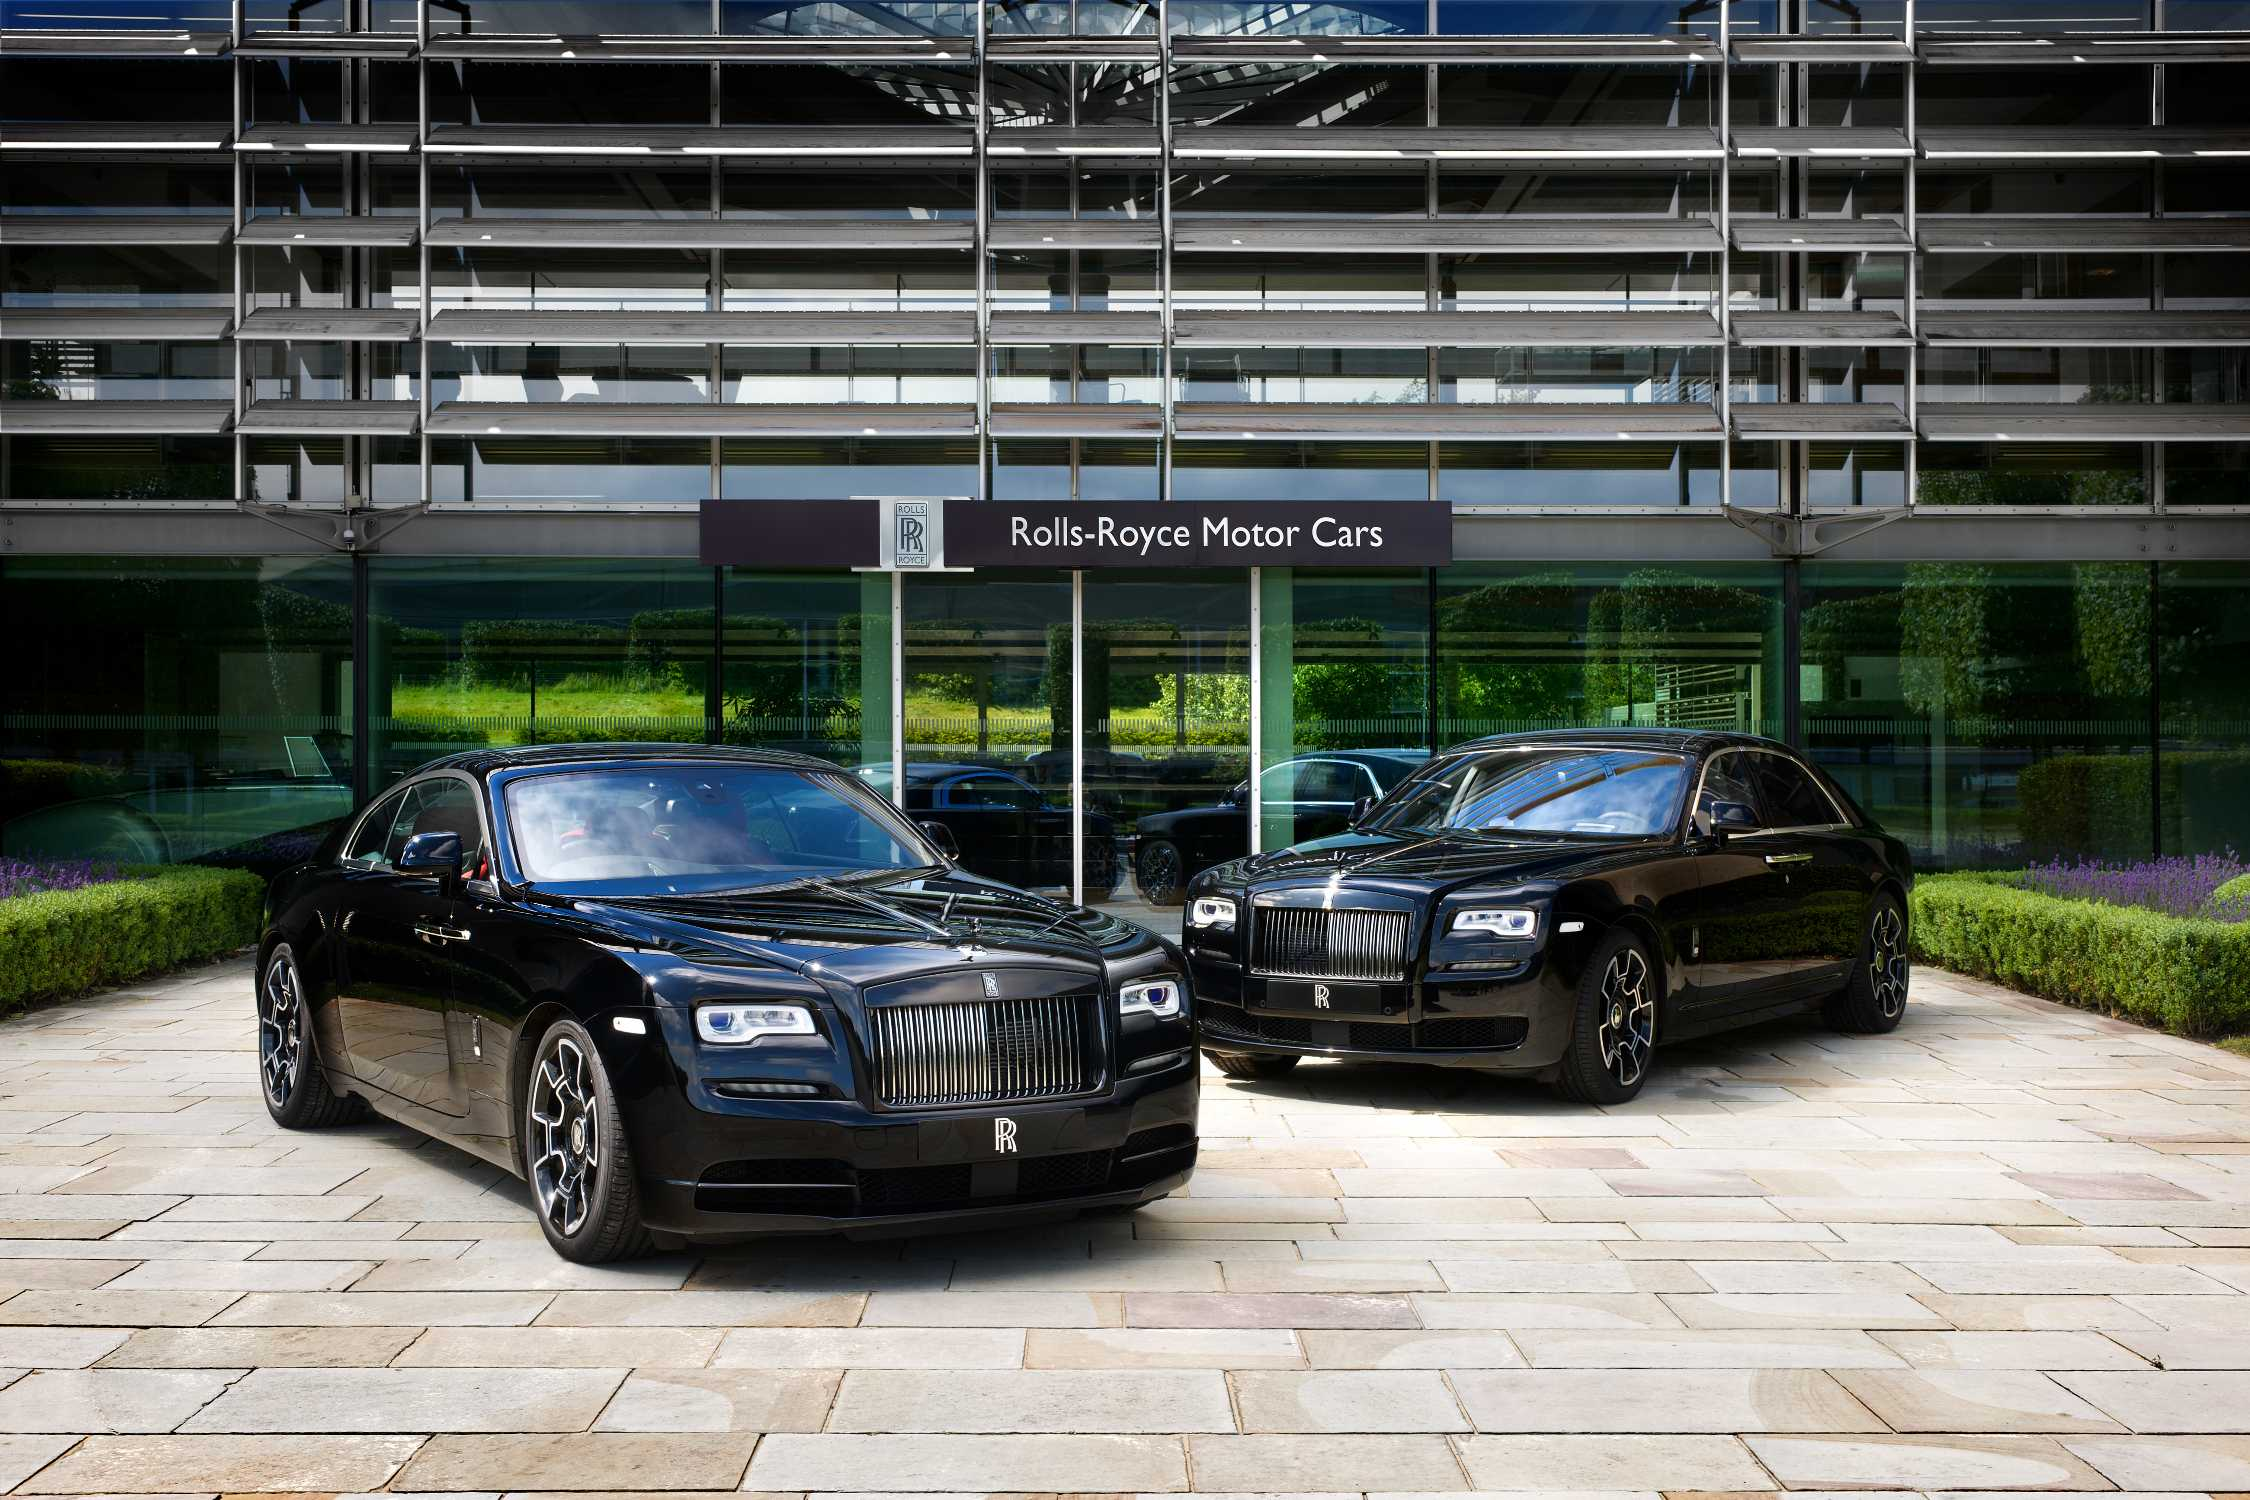 ROLLS ROYCE CELEBRATES 2016 GOODWOOD FESTIVAL OF SPEED WITH A DARK